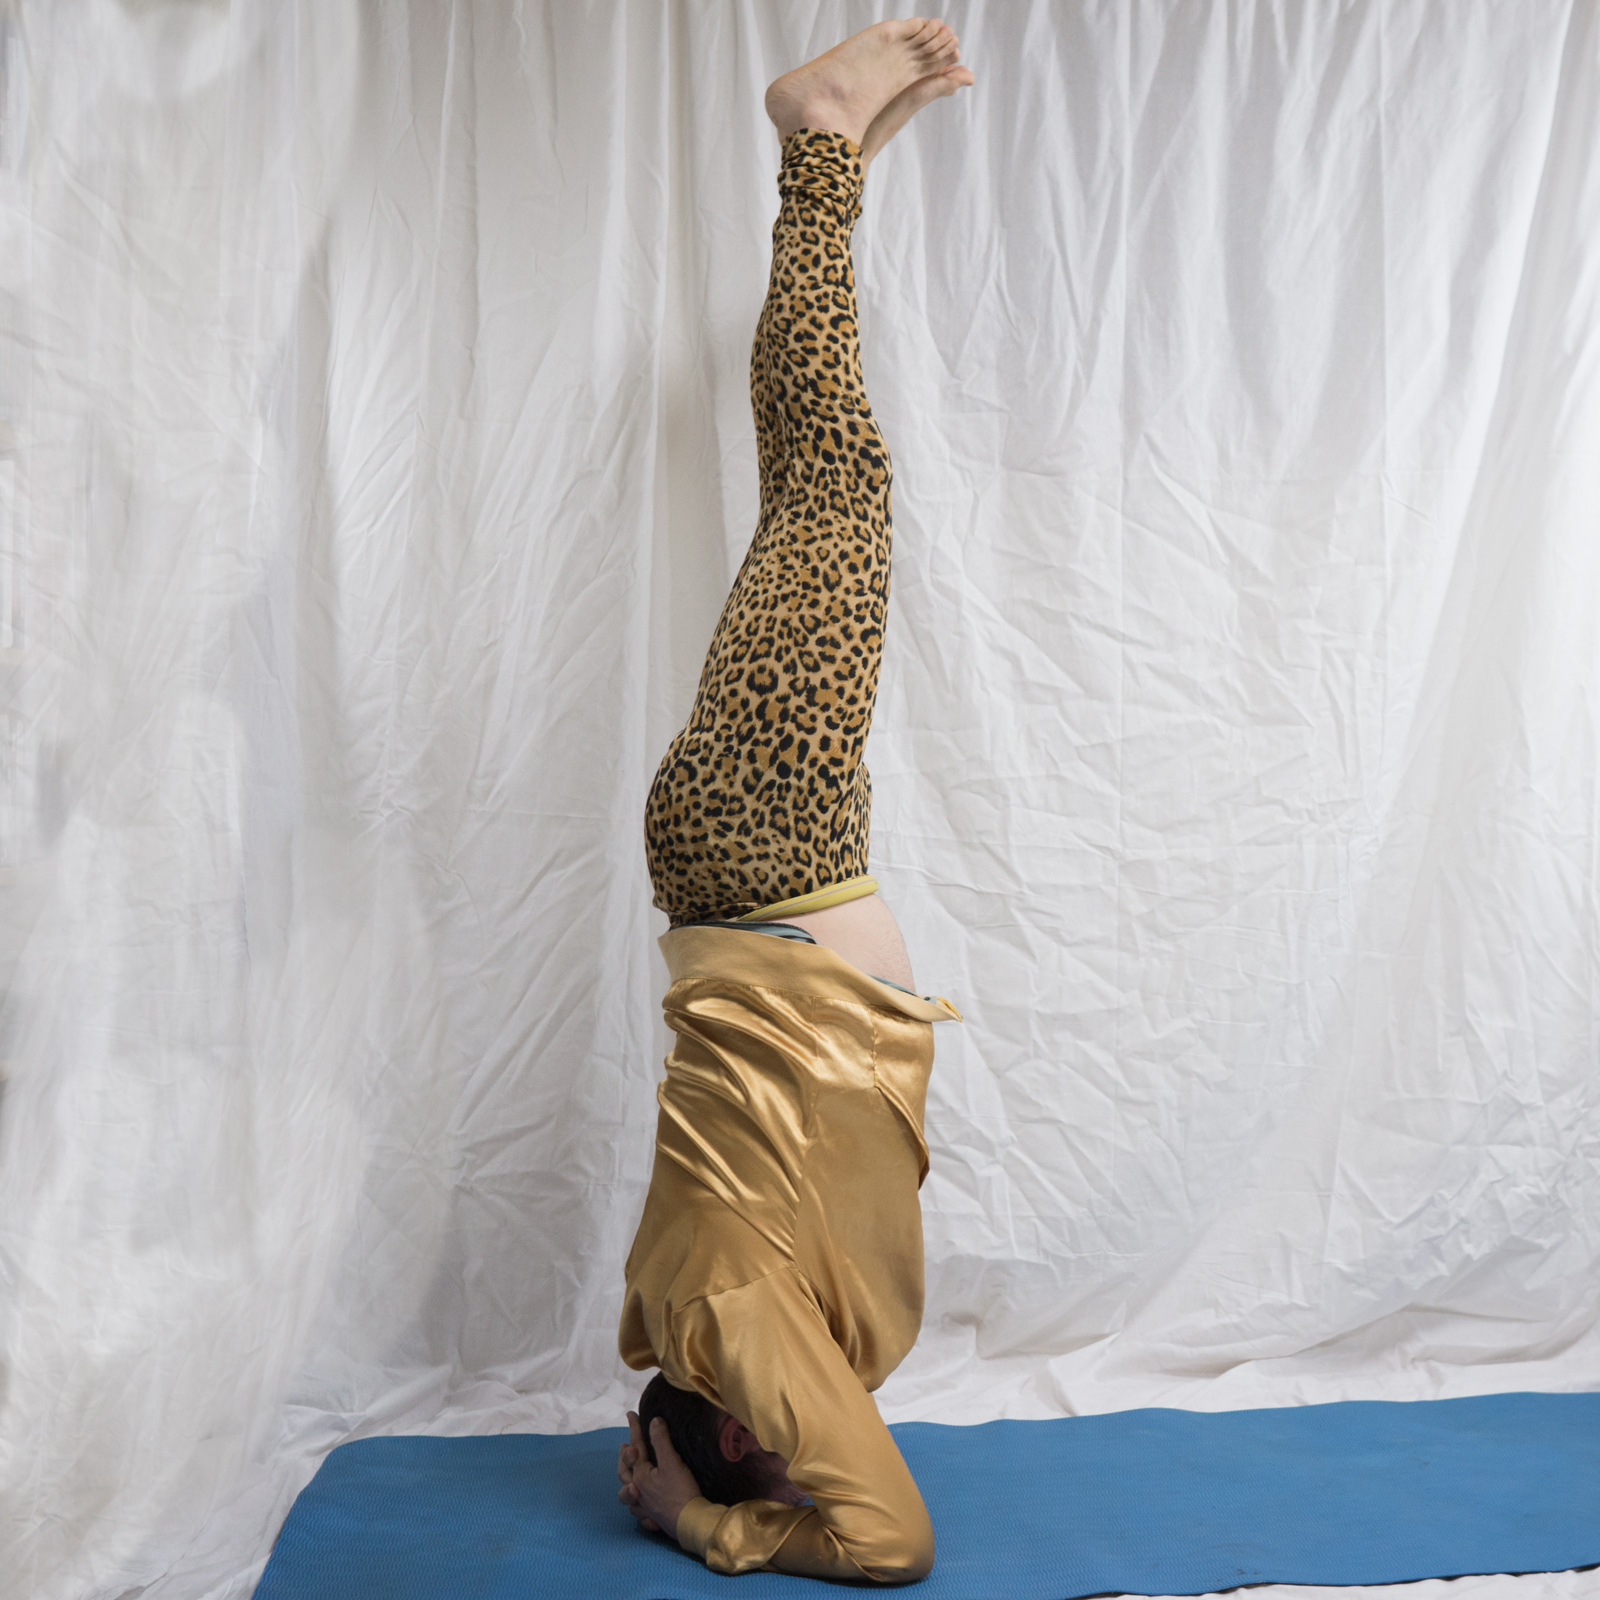 Headstand in April 25th 2018. To be honest, I had no idea about the best drishti for  Sirsasana, but the nasagrai felt very right and stable. It's gazing on the nose, same as when raising arms